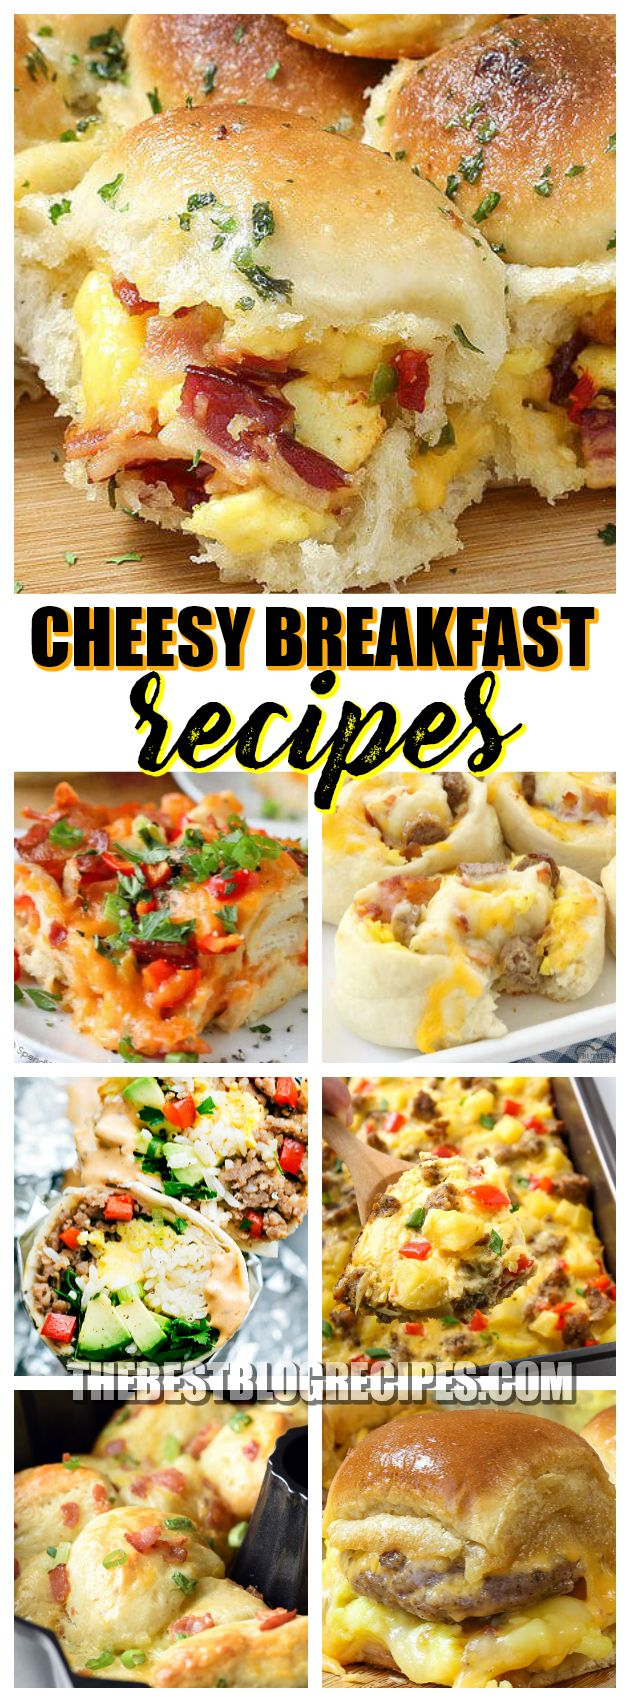 Awesome breakfast in five minutes. Lick your fingers like delicious